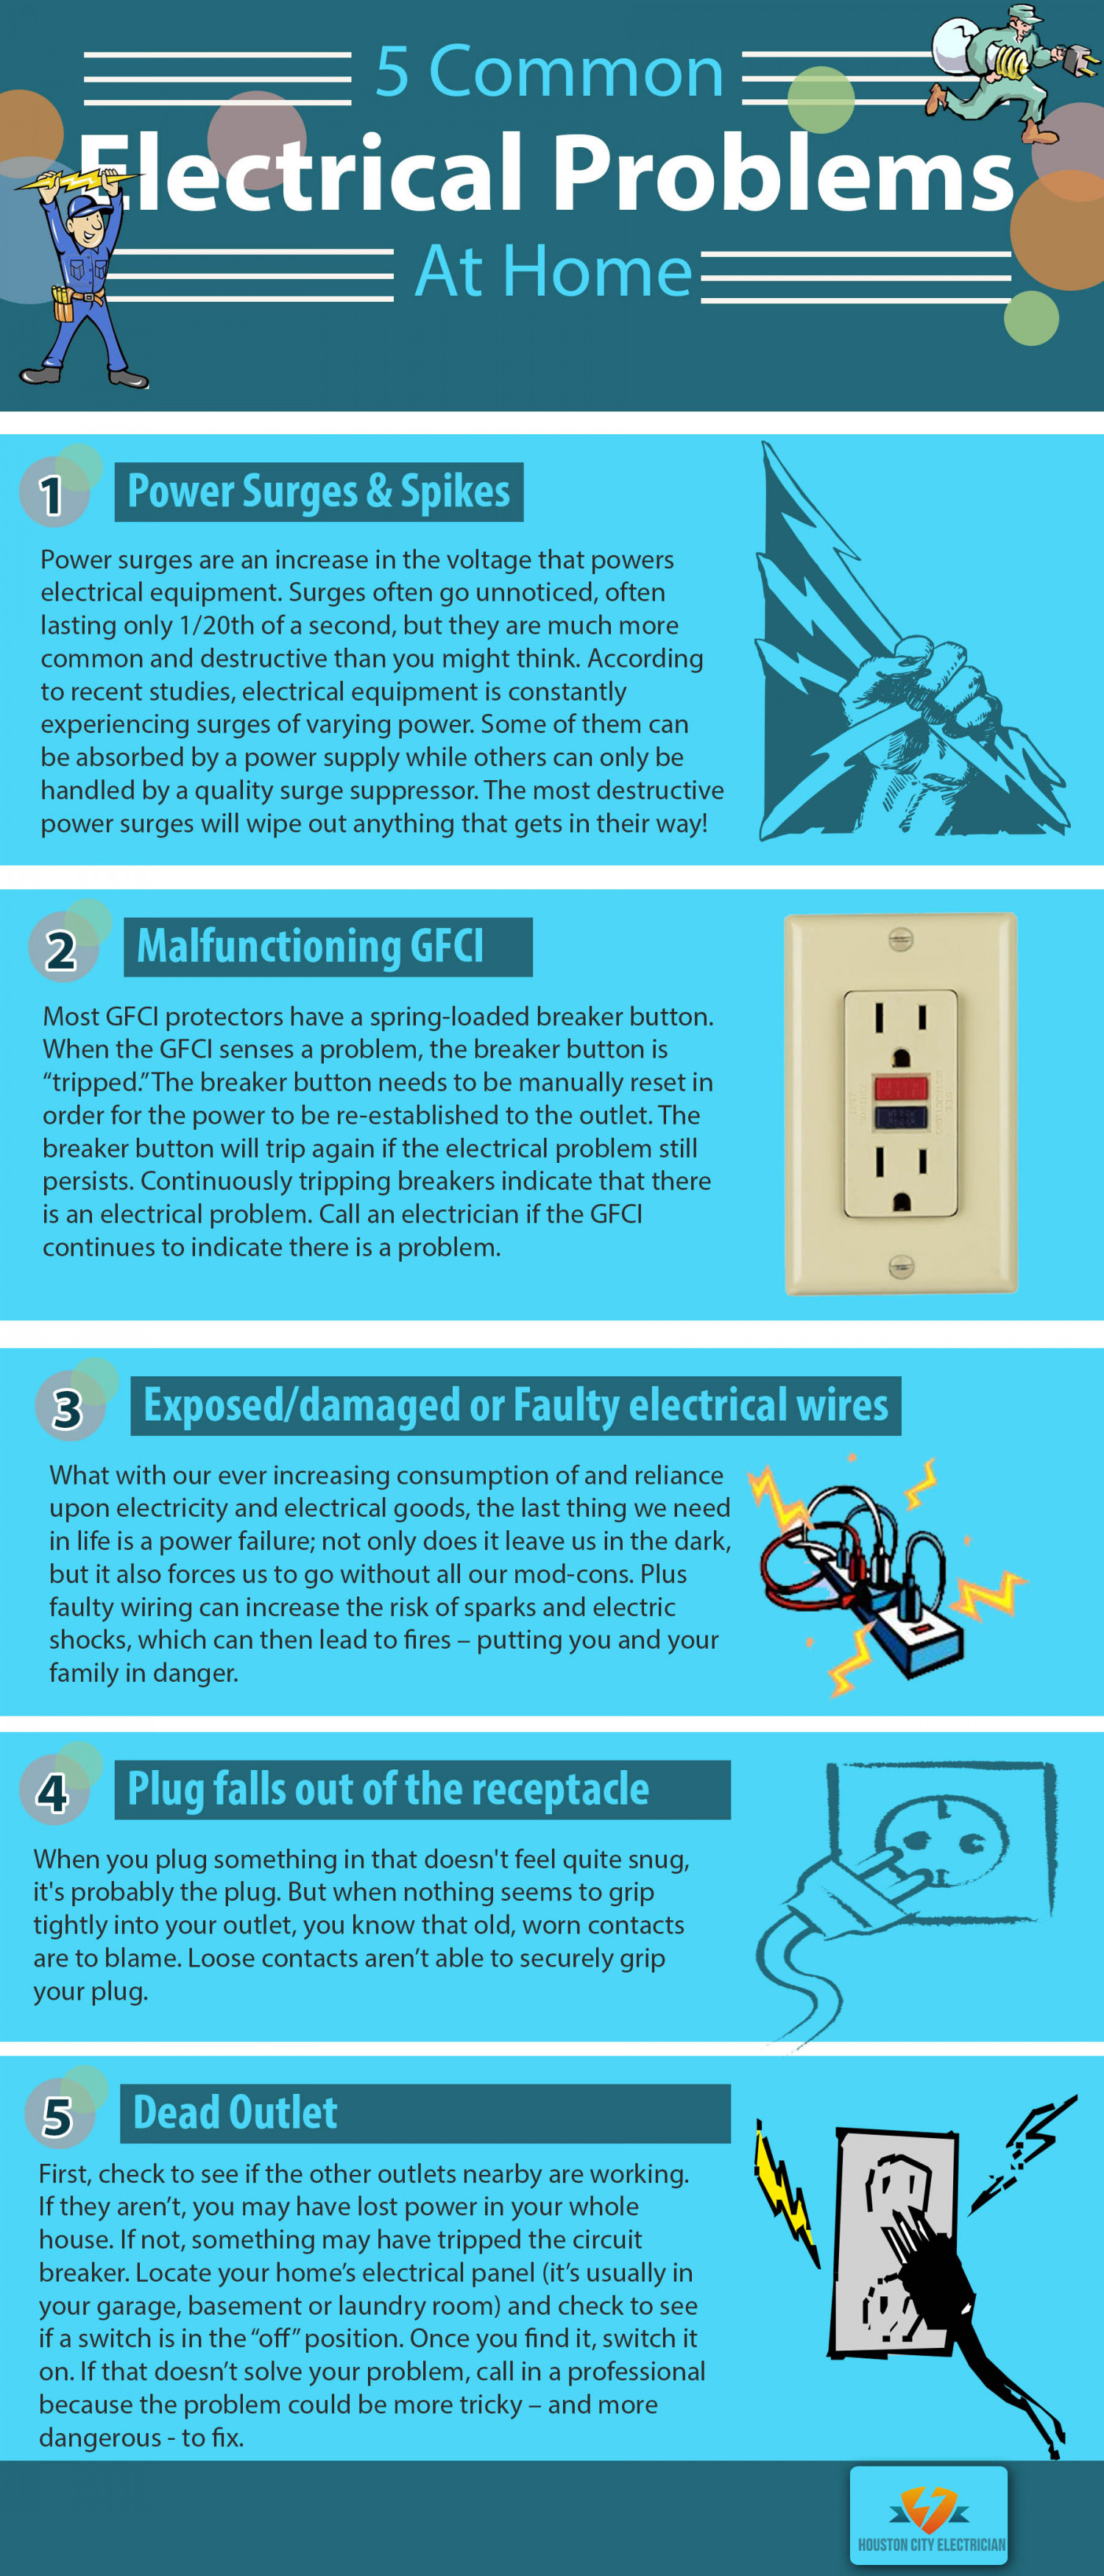 Five Common Electrical Problems at Home | Visual.ly